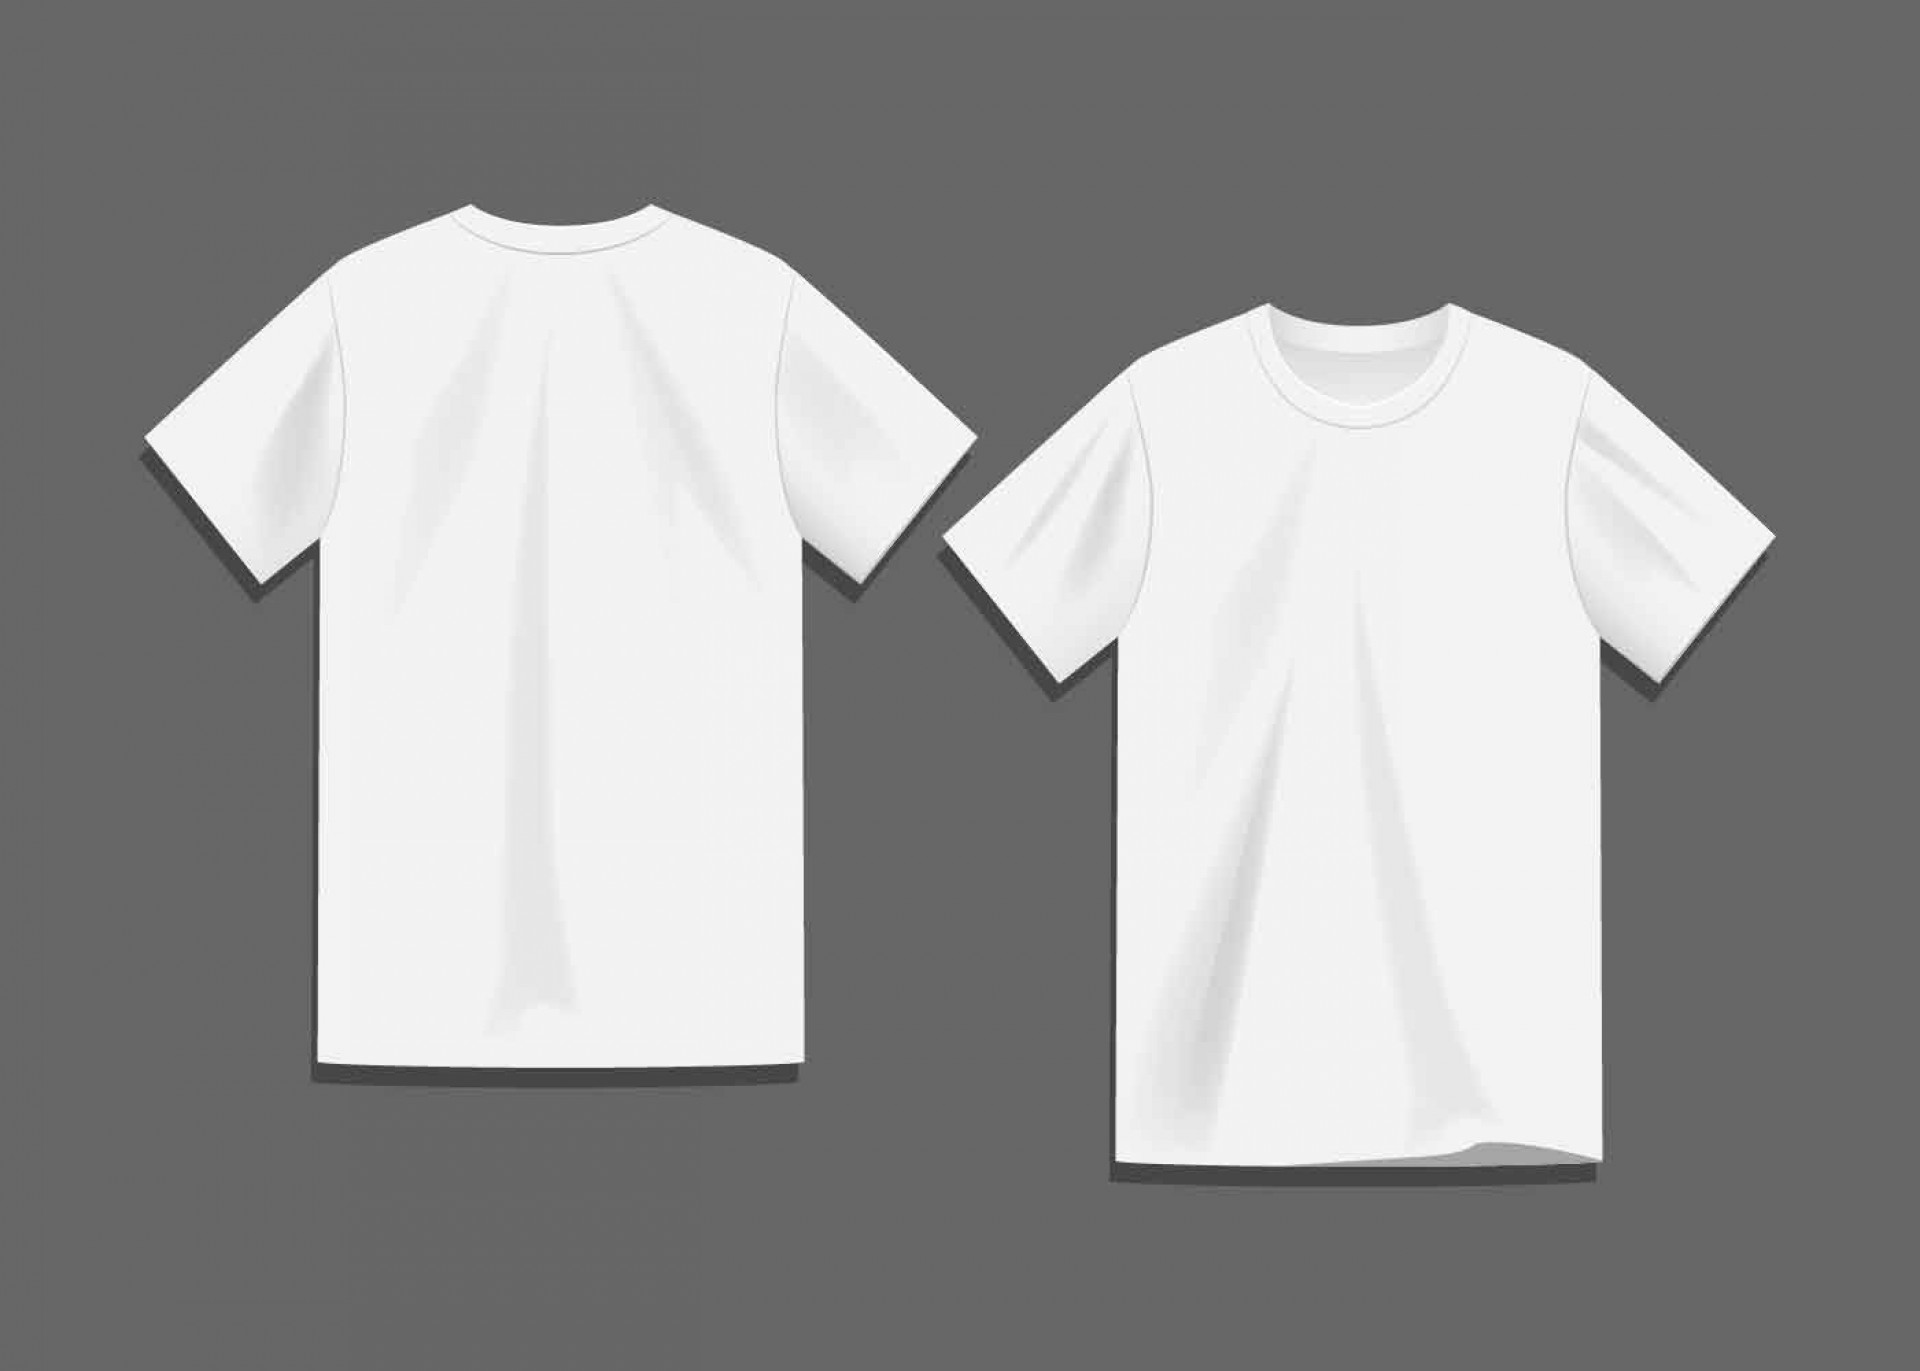 010 Stupendou T Shirt Template Vector High Resolution  Illustrator Design Free Download Ai1920